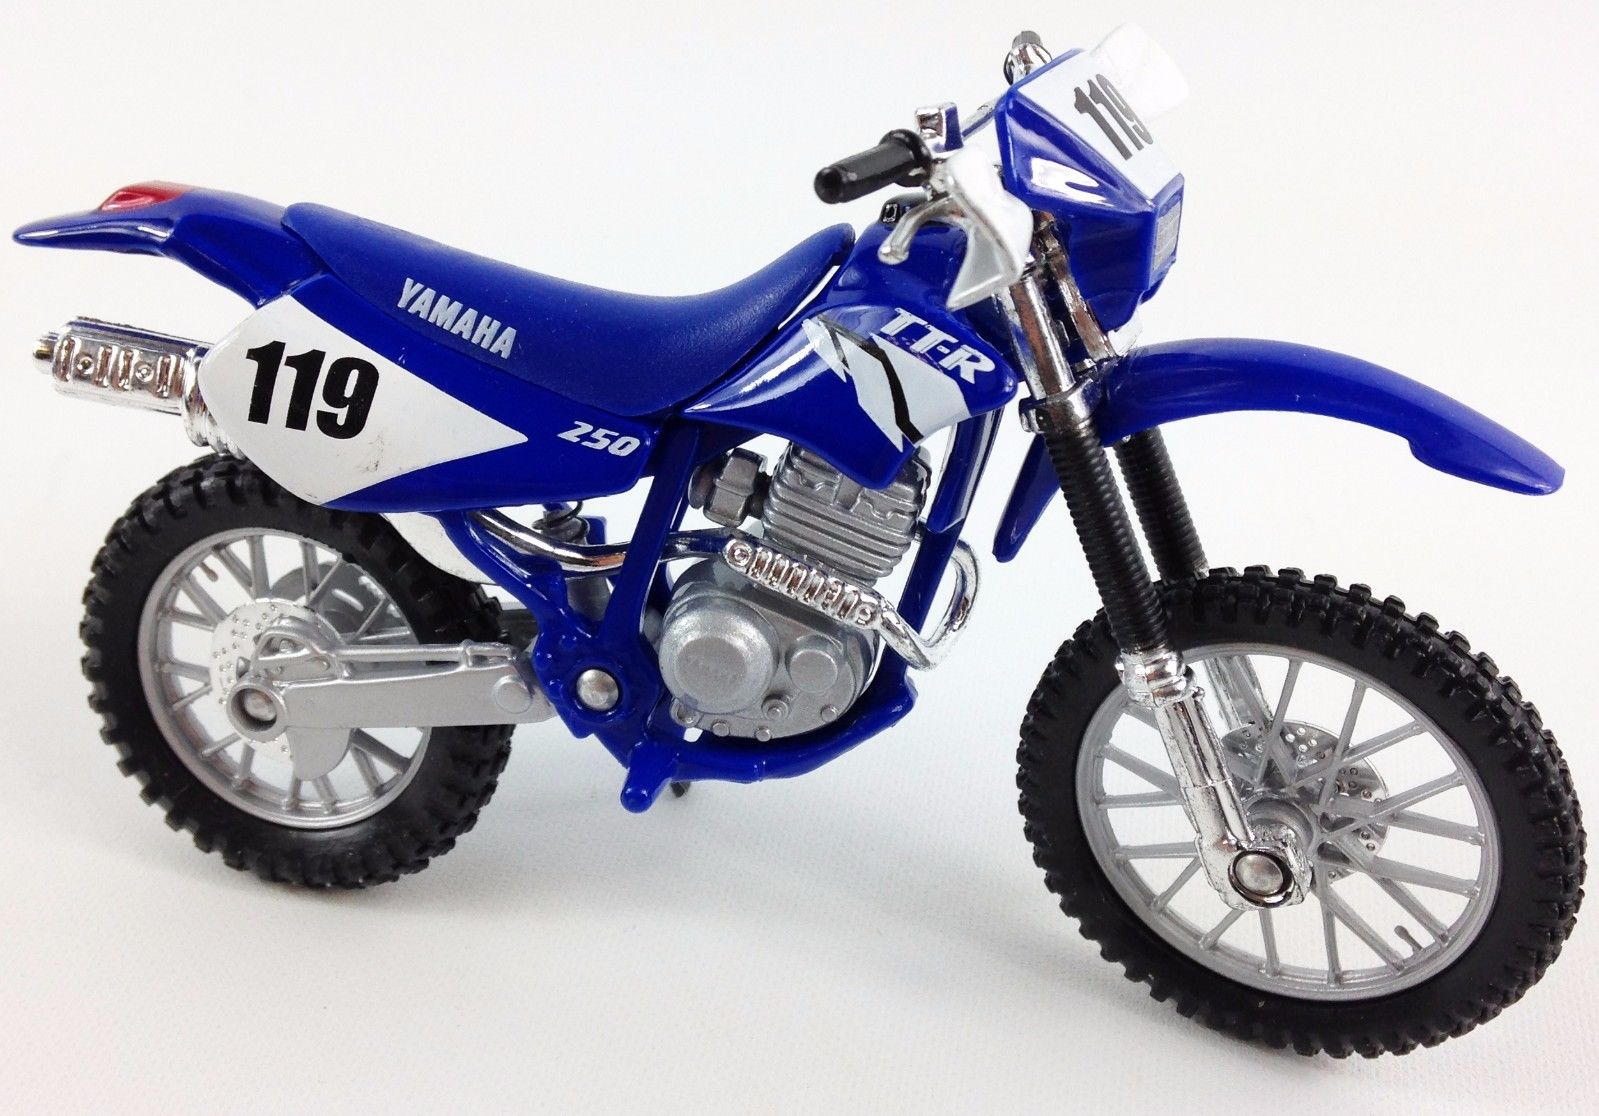 Yamaha ttr 250 1 18 diecast toy model motocross bike for Yamaha ttr 250